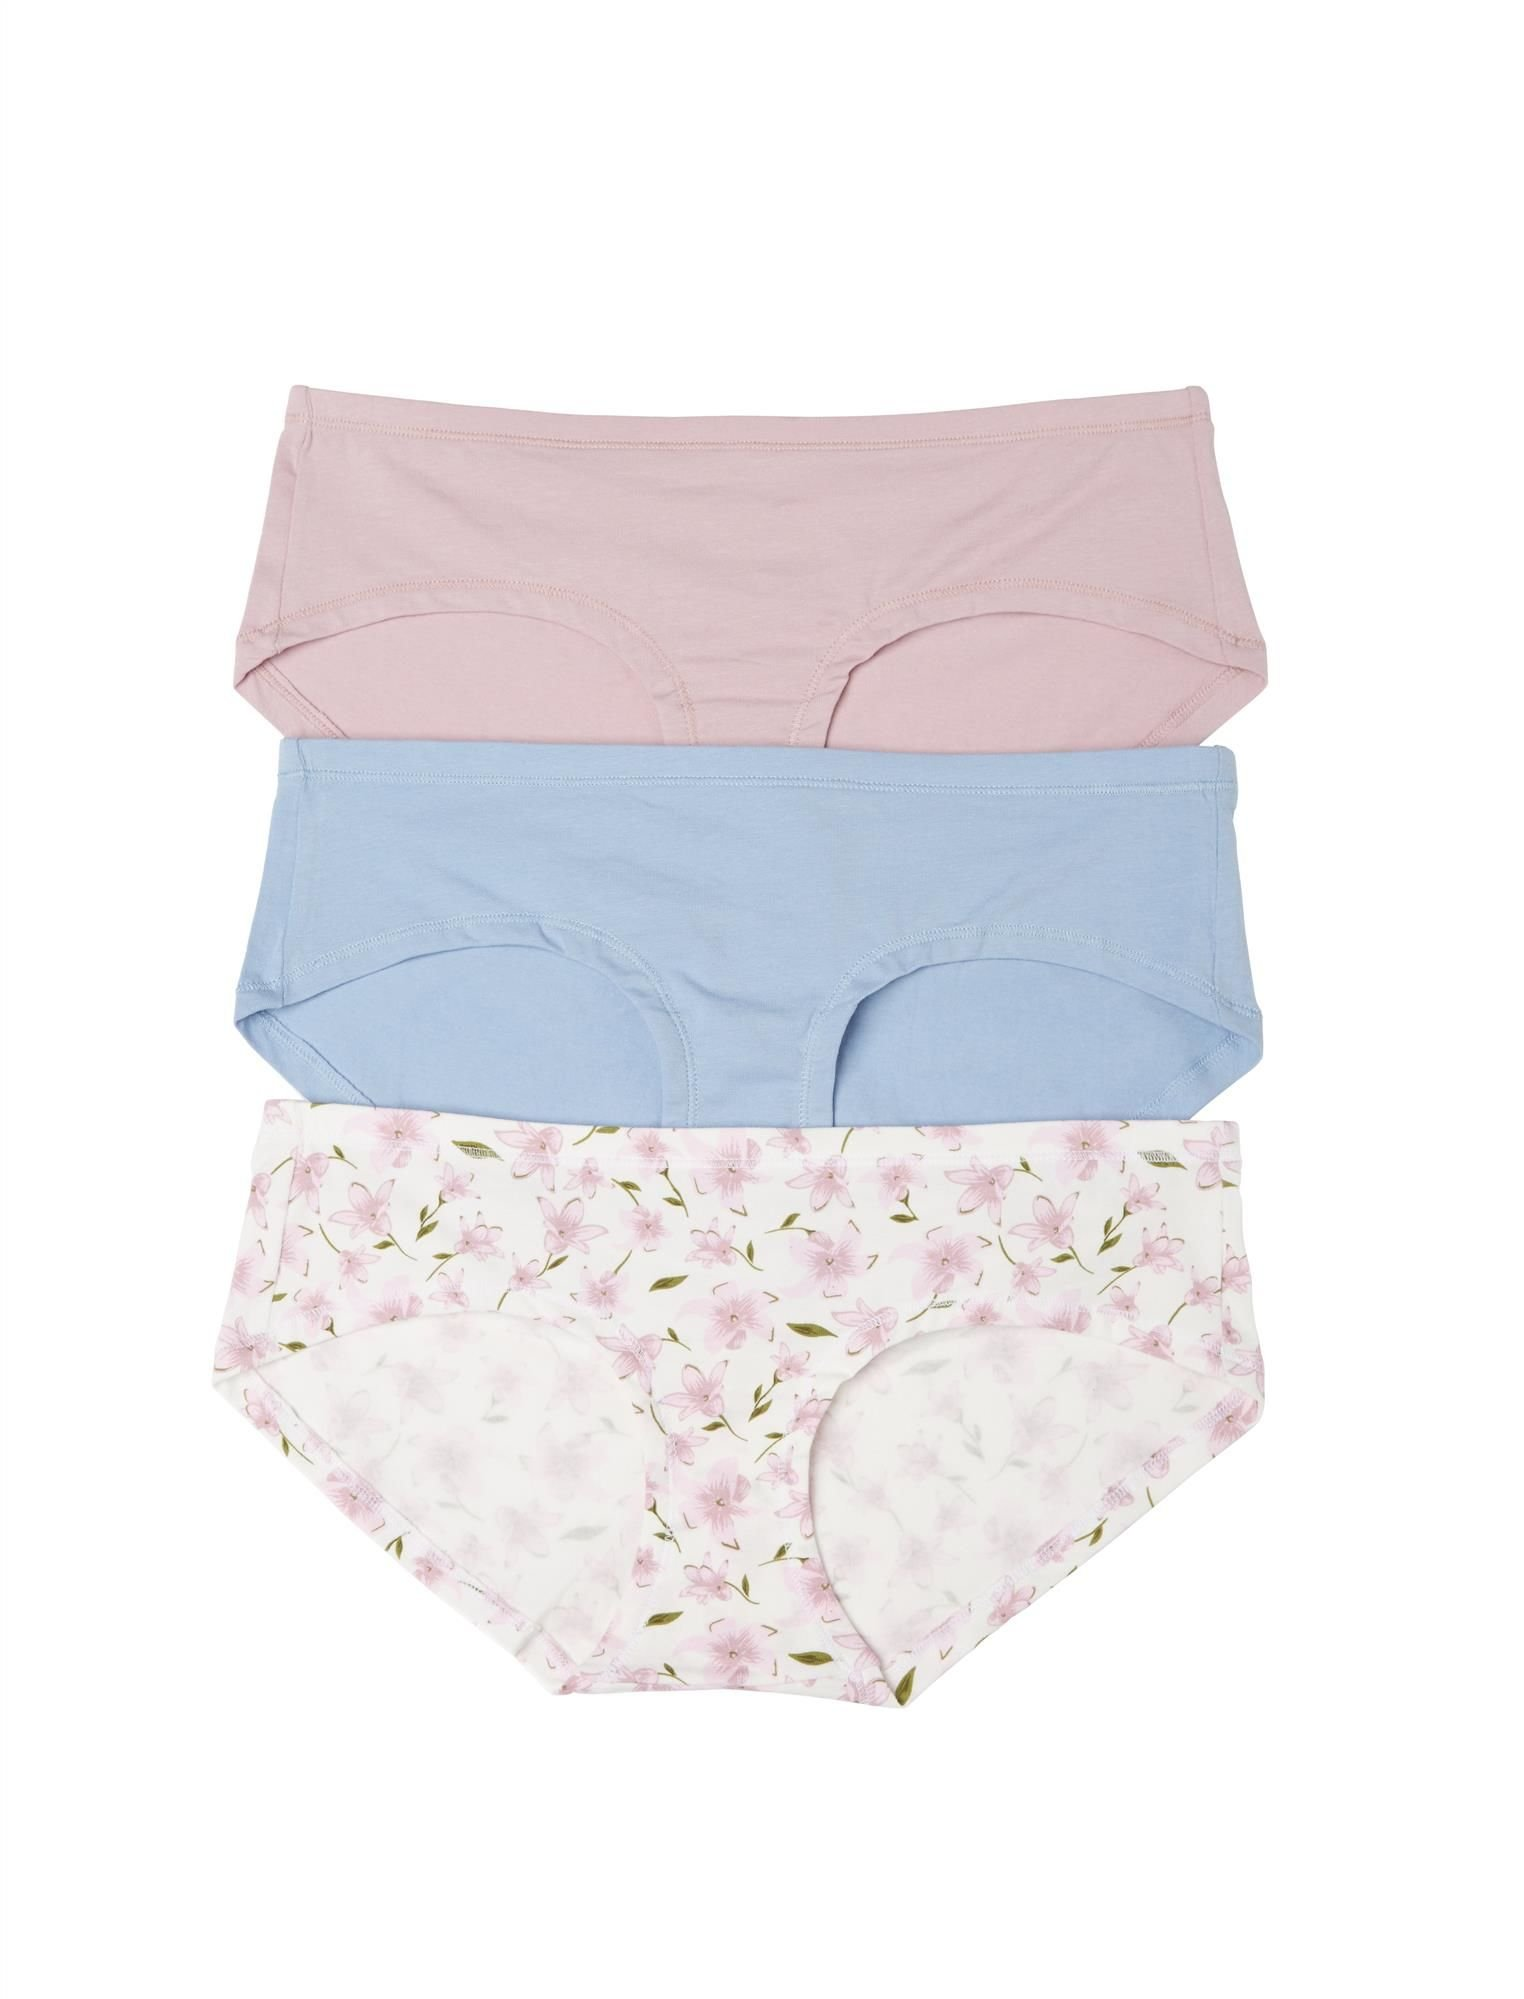 Motherhood Maternity Hipster Panties (3 Pack)